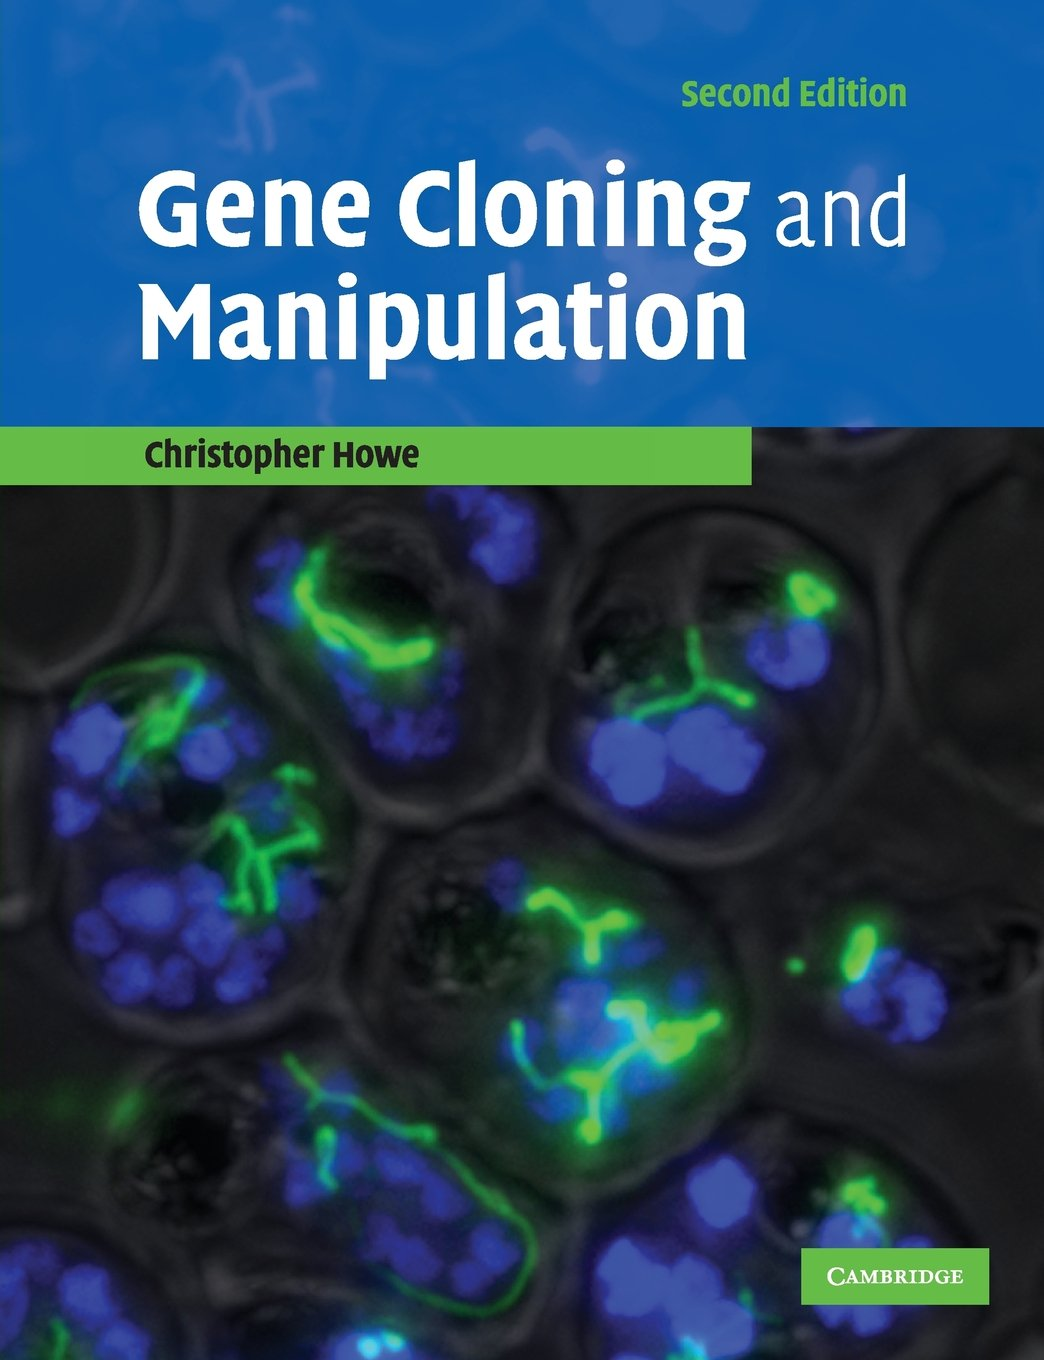 Image OfGene Cloning And Manipulation